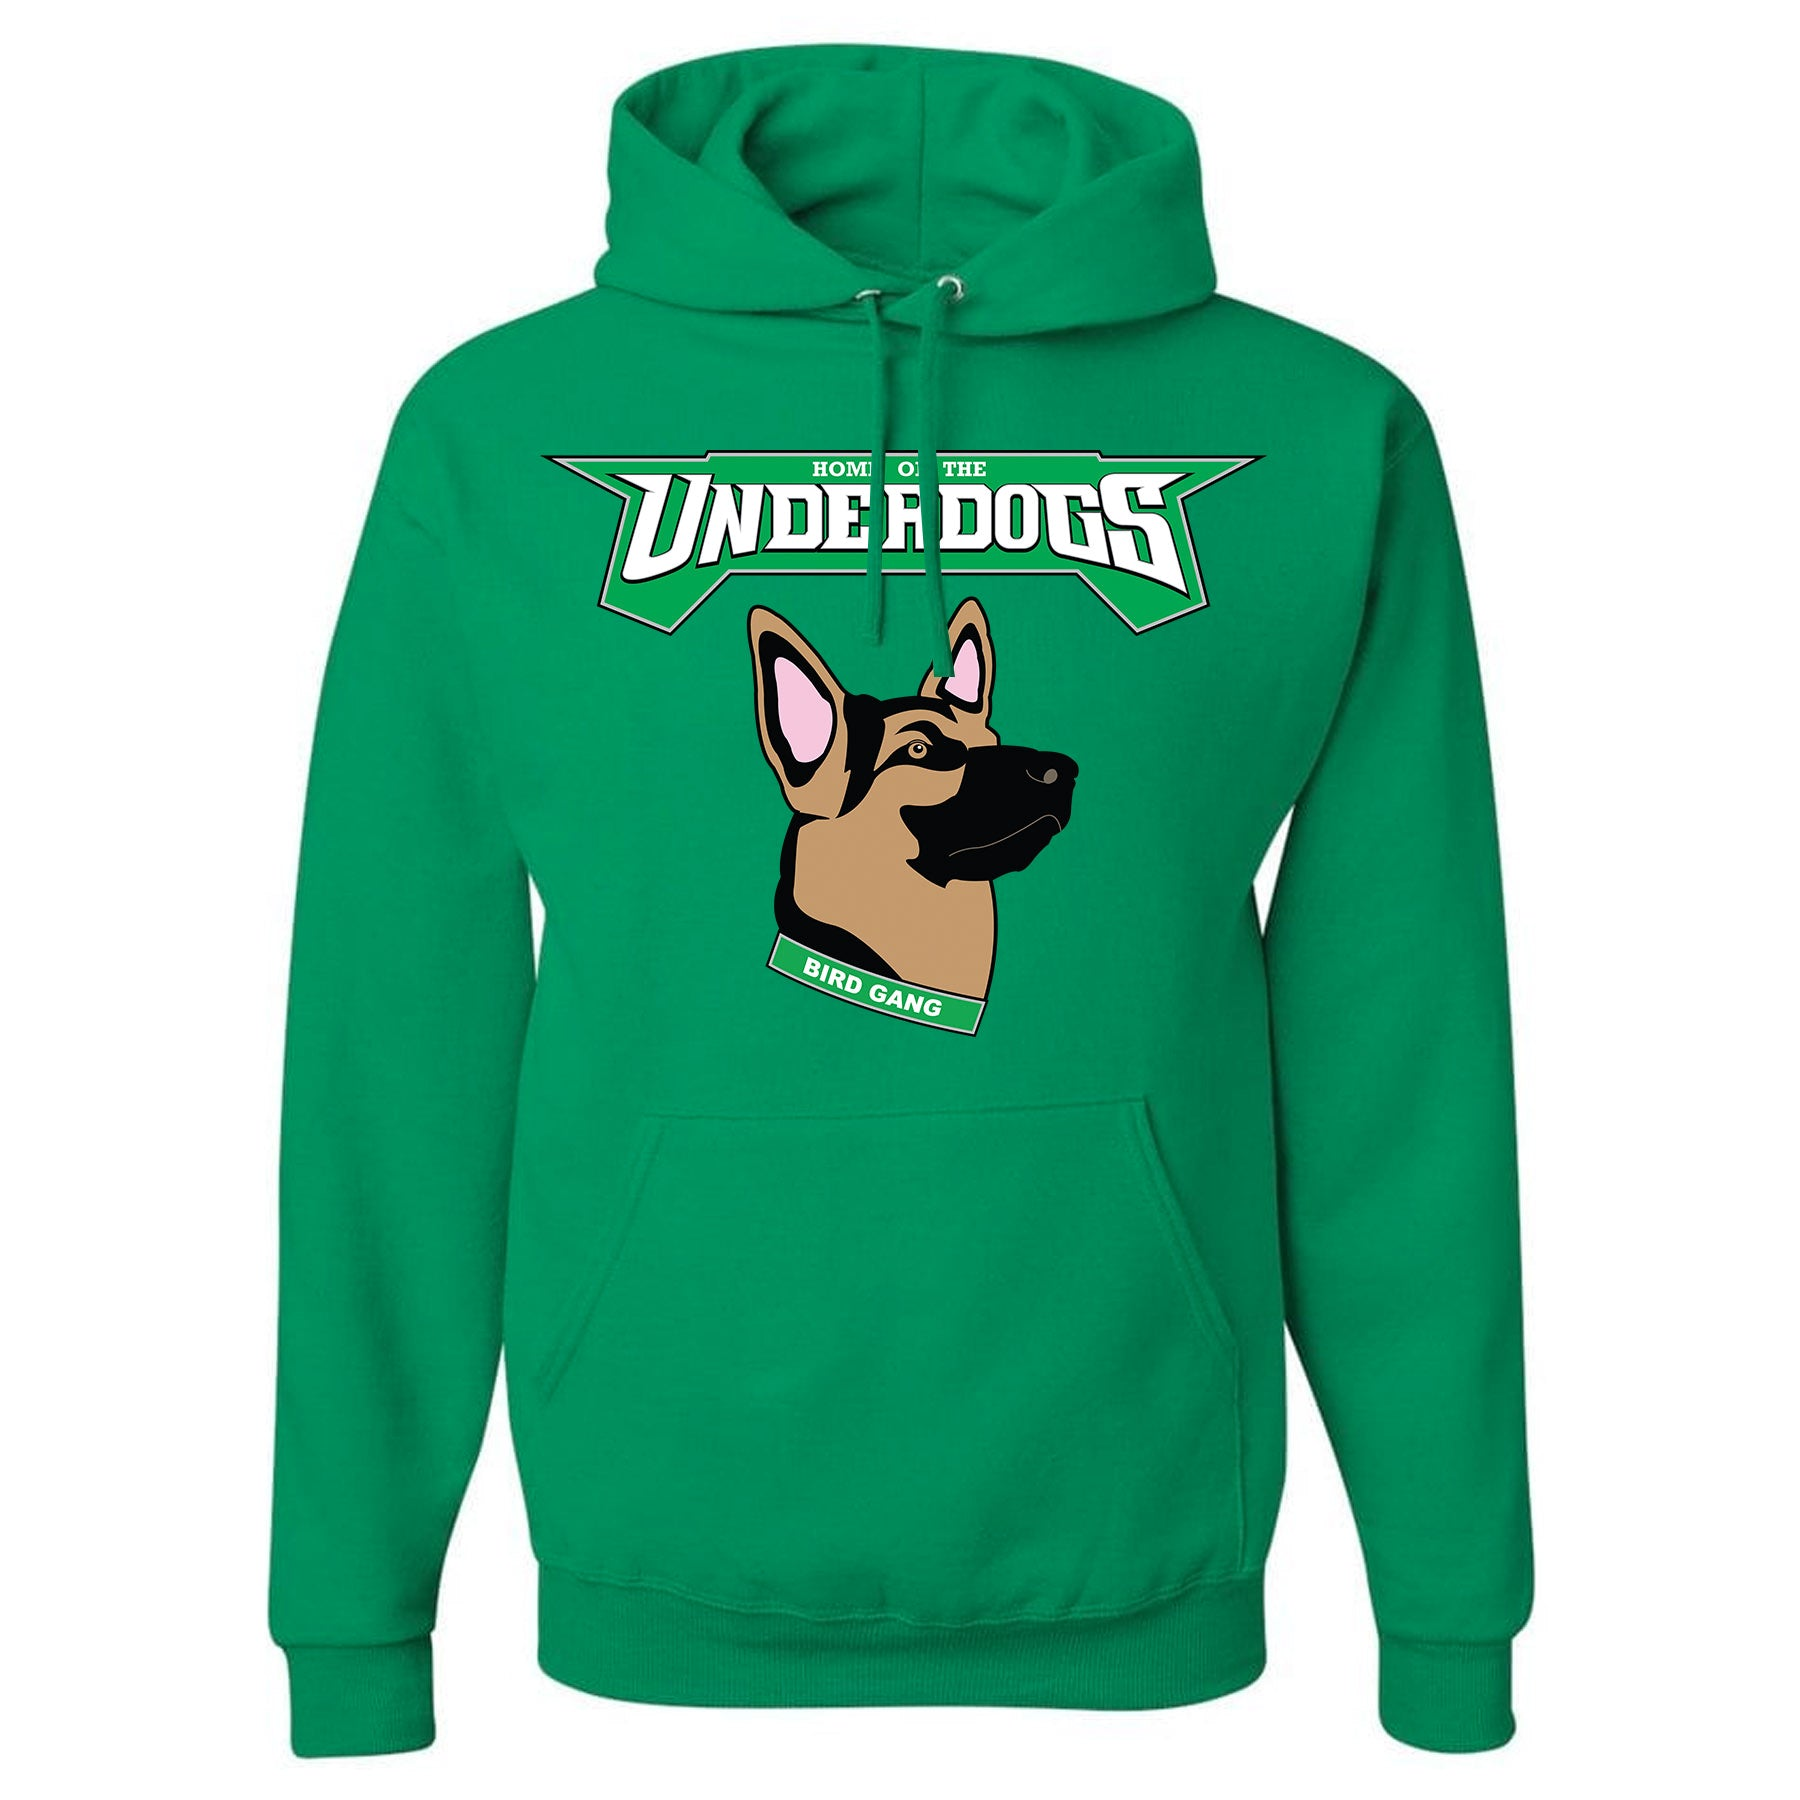 brand new 55f7c 53791 Underdog German Shepherd Mask Philadelphia Inspired Green Hoodie